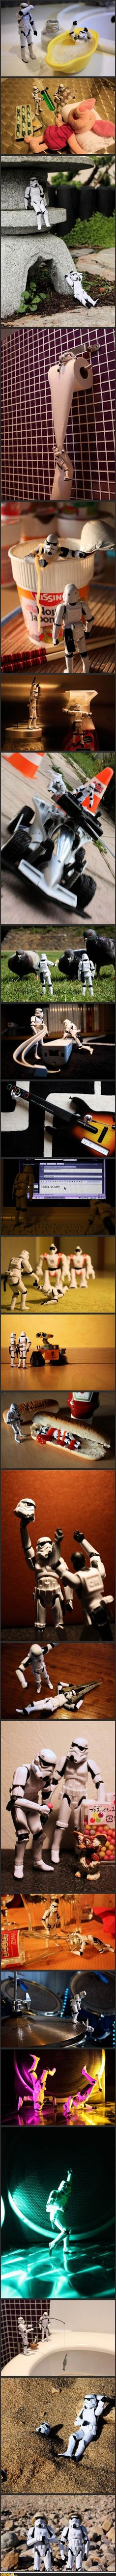 What Stormtroopers Do on Their Days off.